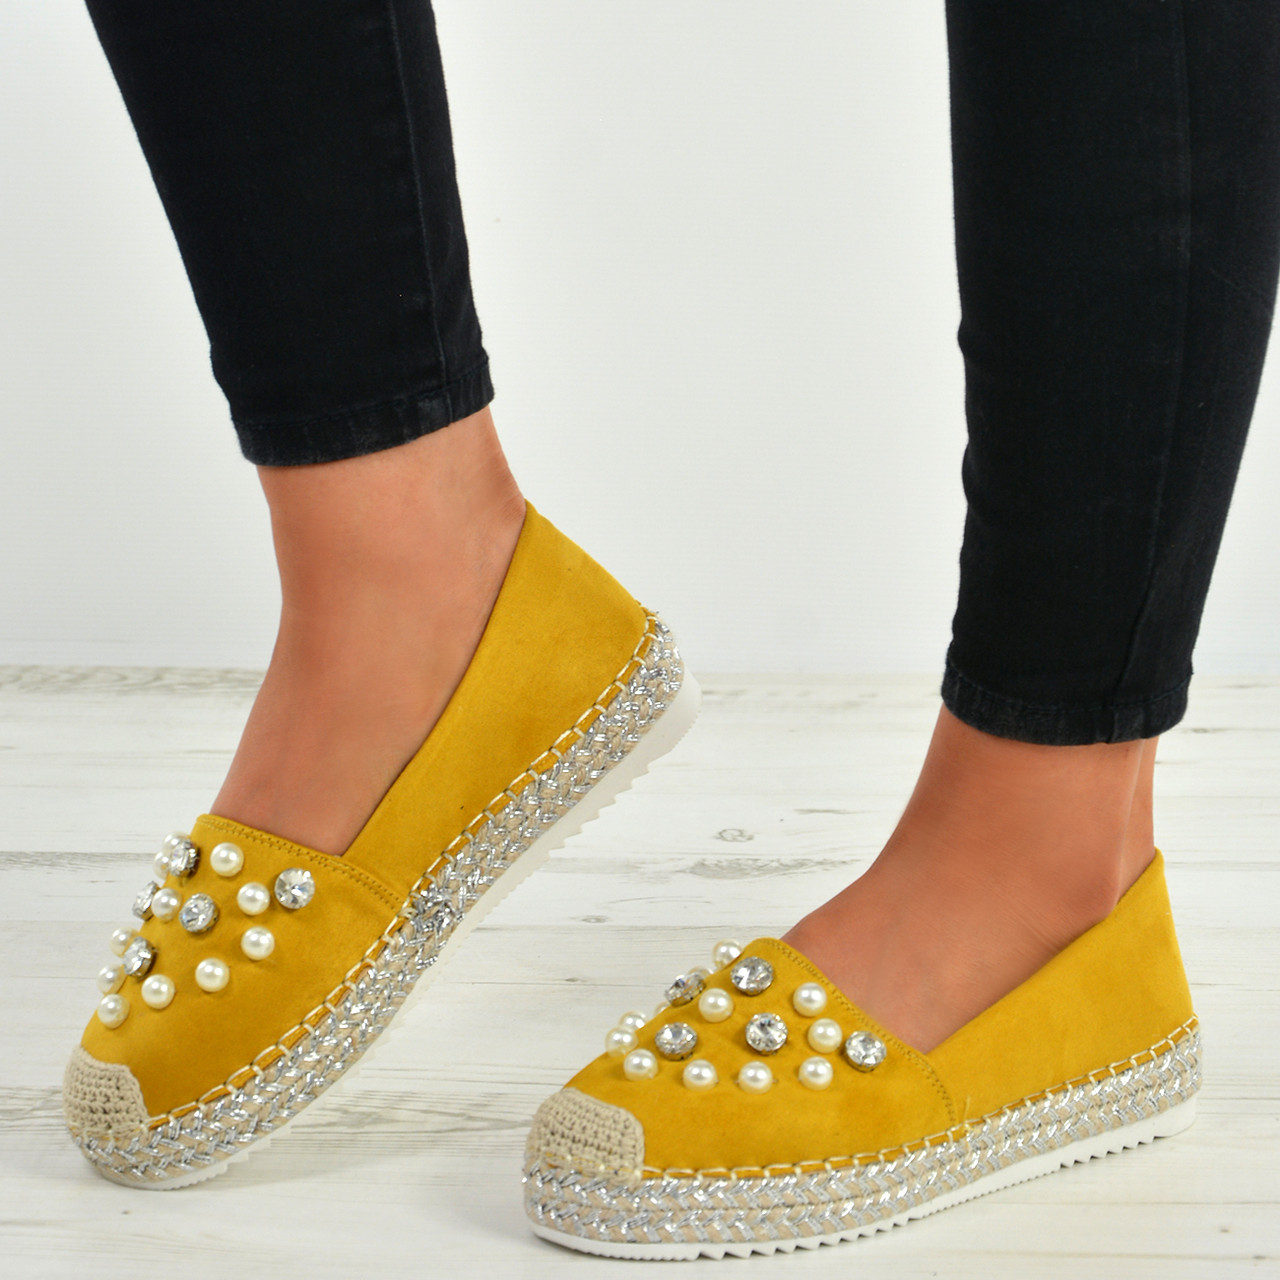 83f71b359 New Womens Ladies Slip On Flat Espadrille Ballerina Pearl Studded Shoes  Size Uk